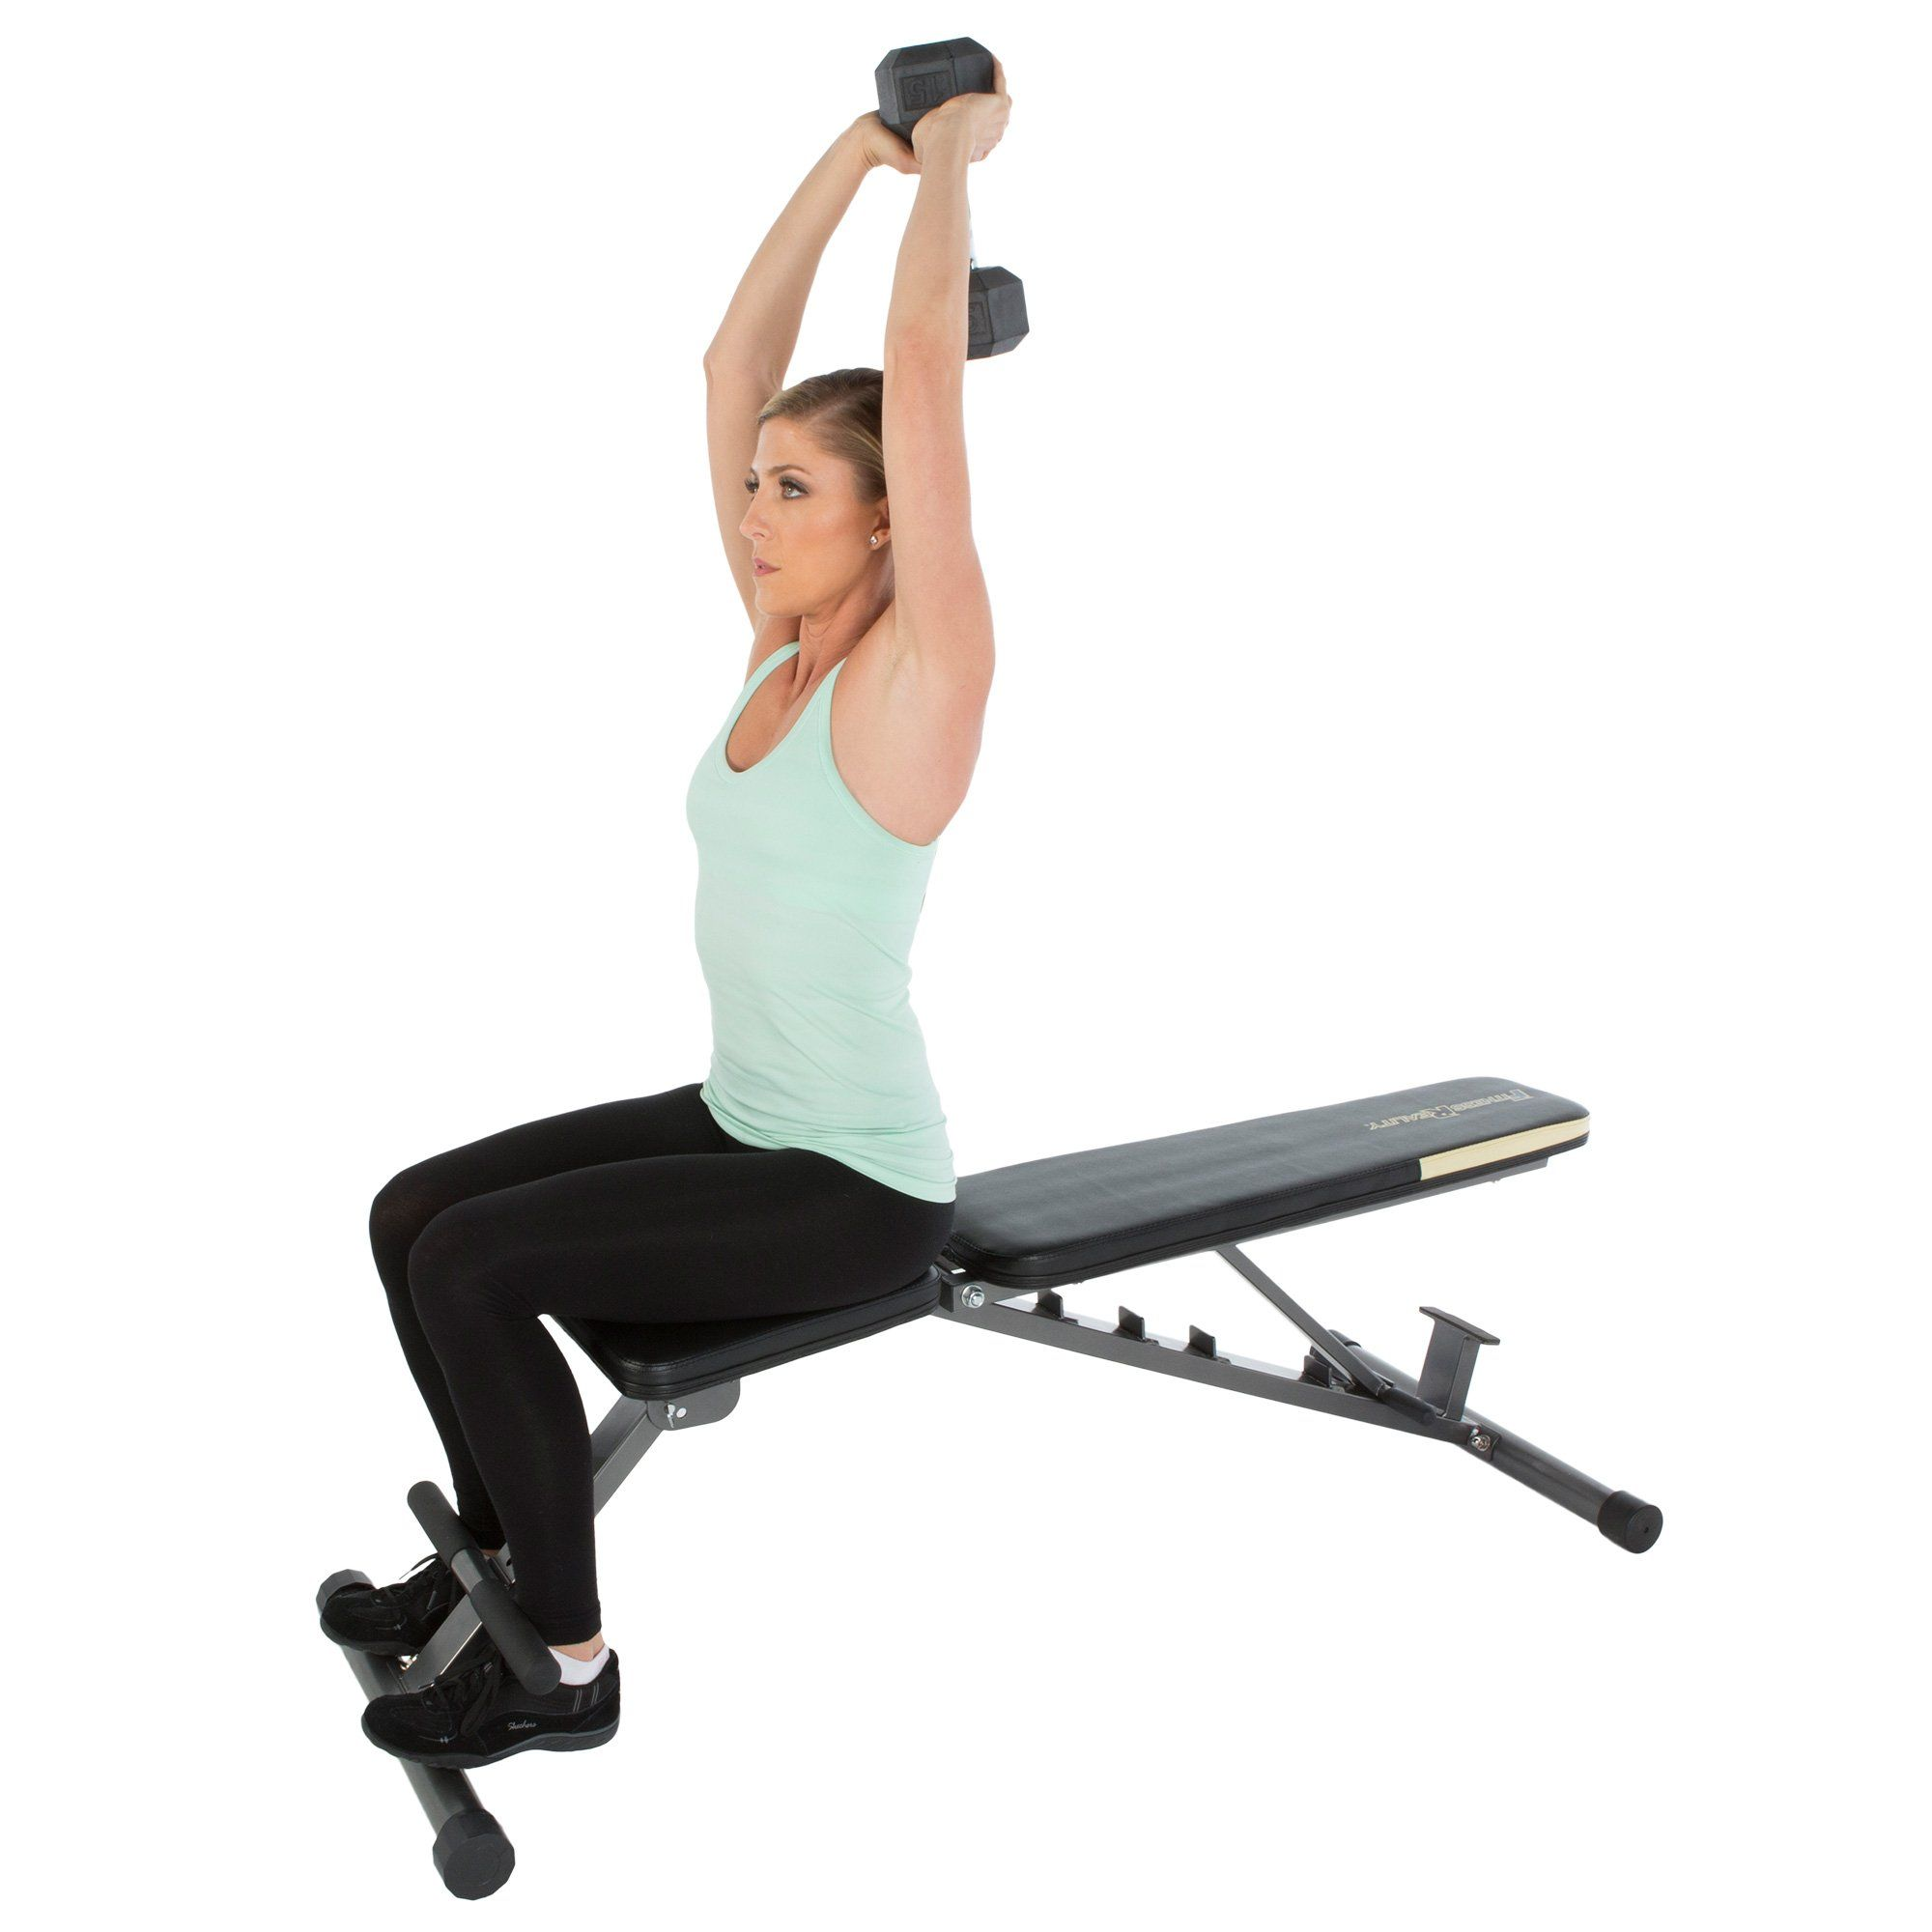 Fitness Reality 1000 Super Max Adjustable Weight Bench 800 Lbs Details Could Be Located Weight Benches Resistance Training Workouts Adjustable Weight Bench